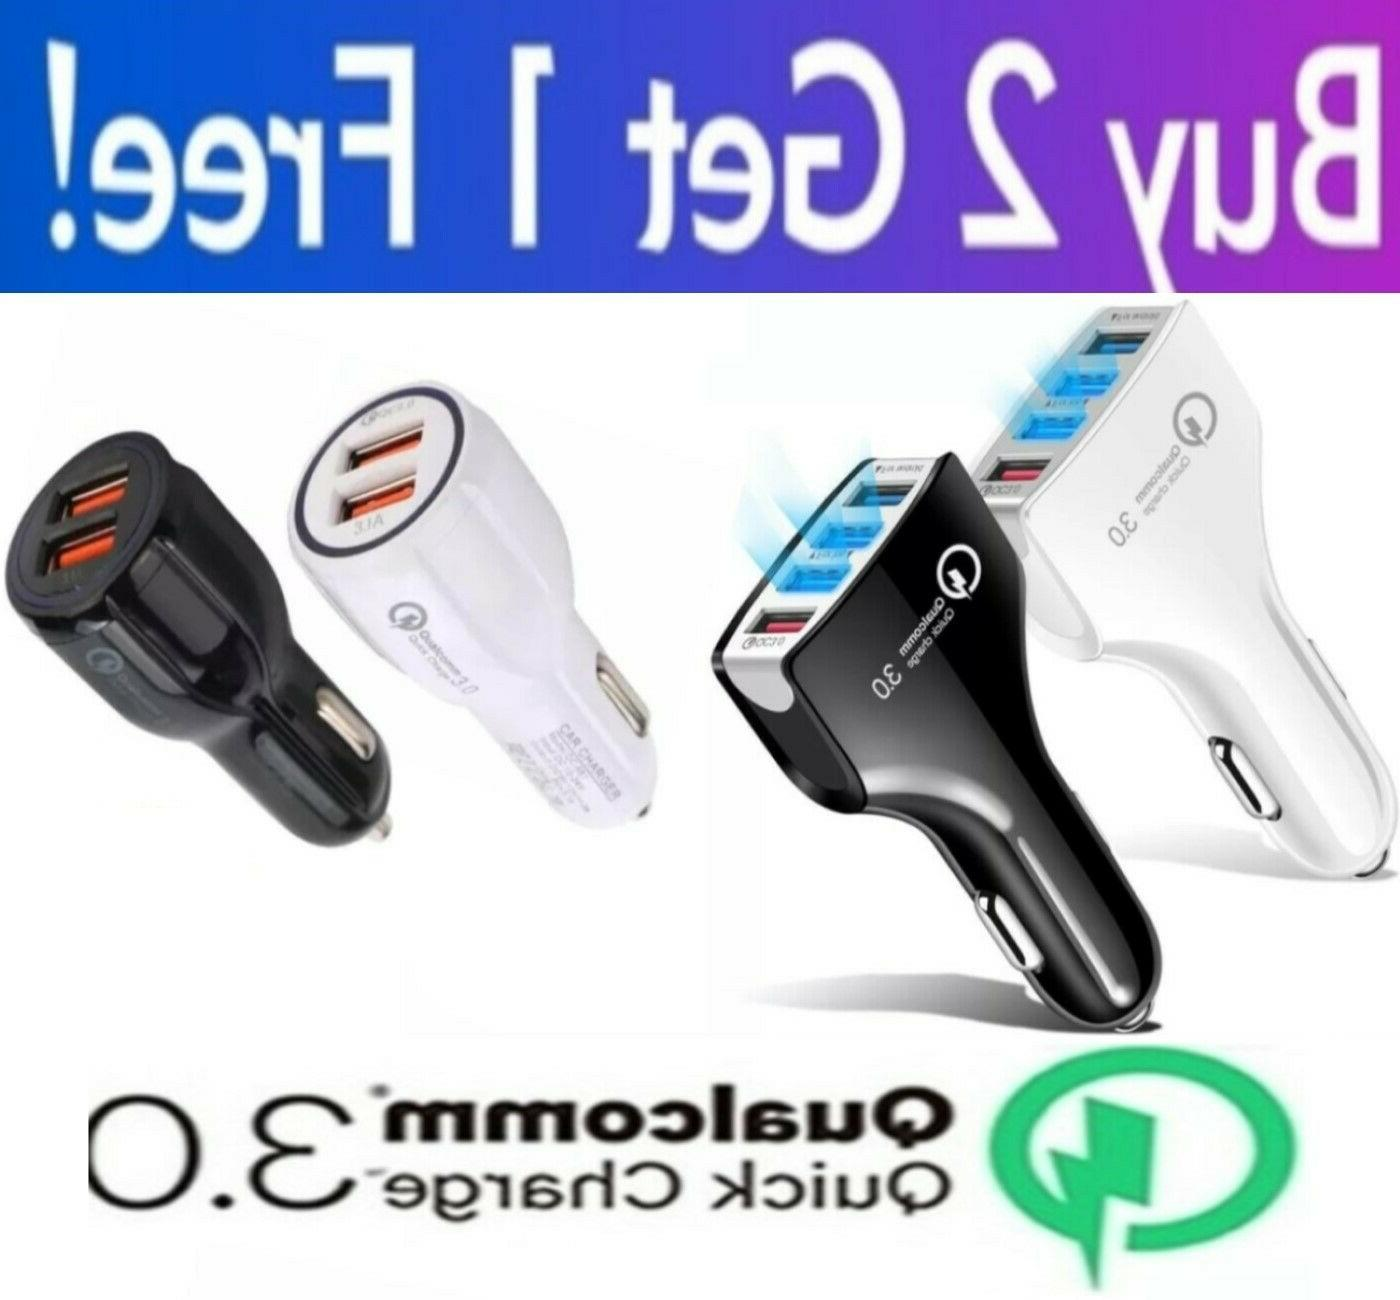 2 3 4 Port Car Charger for iPhone LG